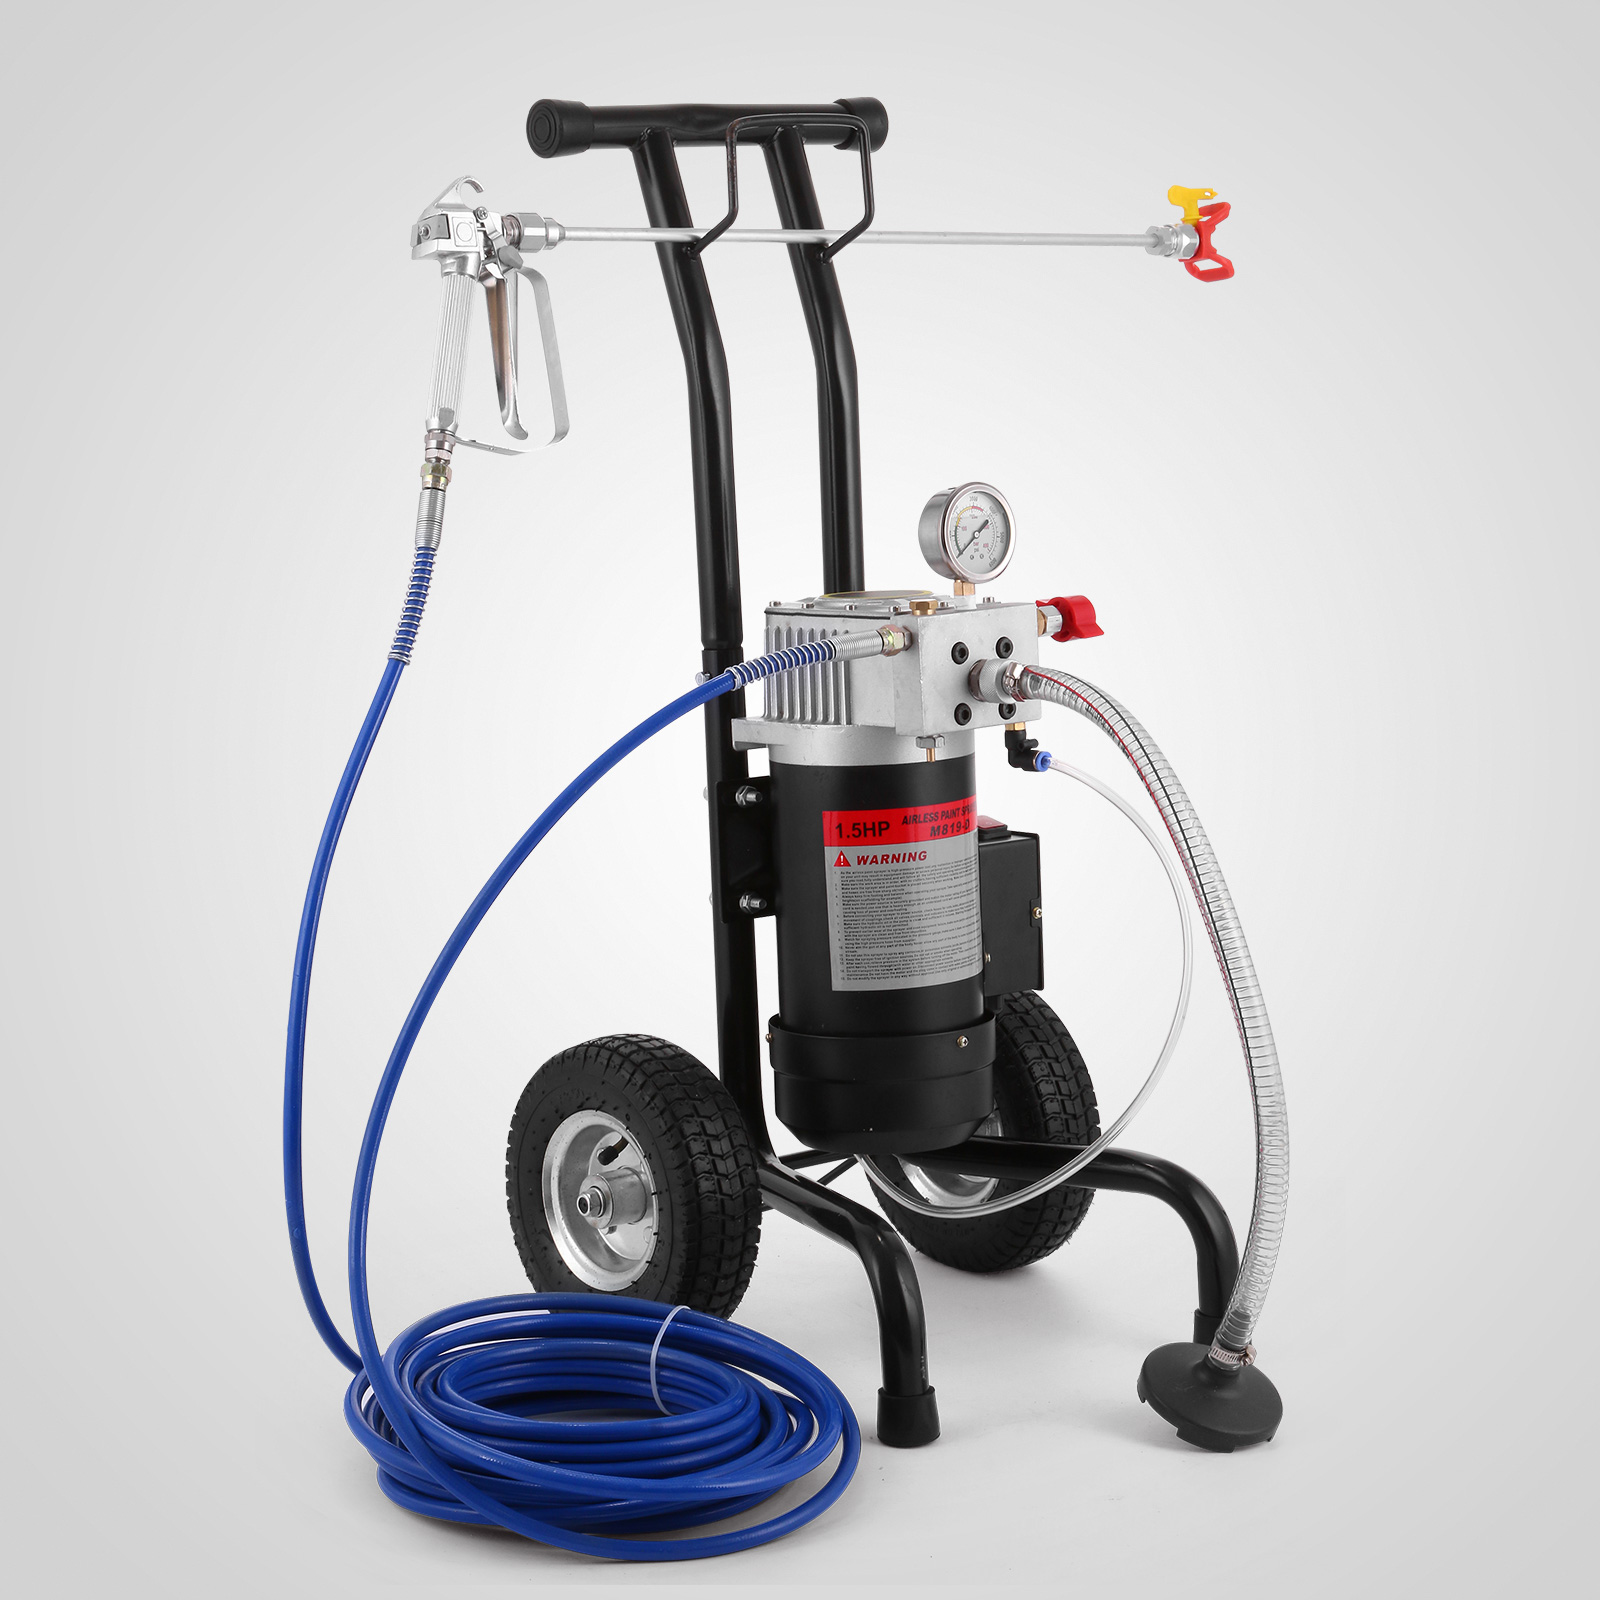 Details about All-in-One Airless Paint Sprayer Spray Gun Painting High  Pressure 220Bar 1 5HP